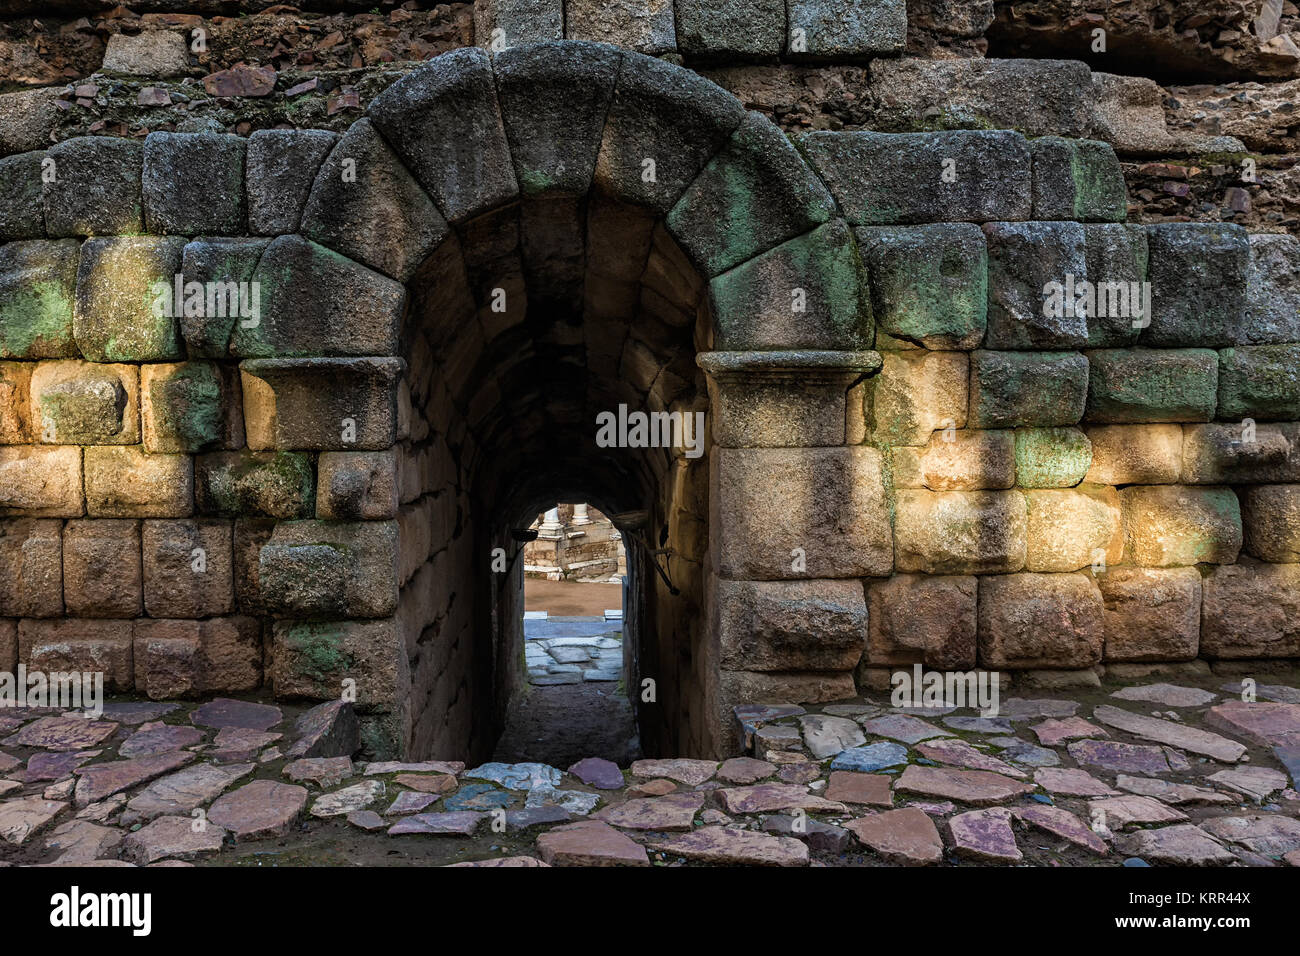 Entrance under the bleachers at the Roman theater in Merida. Spain. - Stock Image